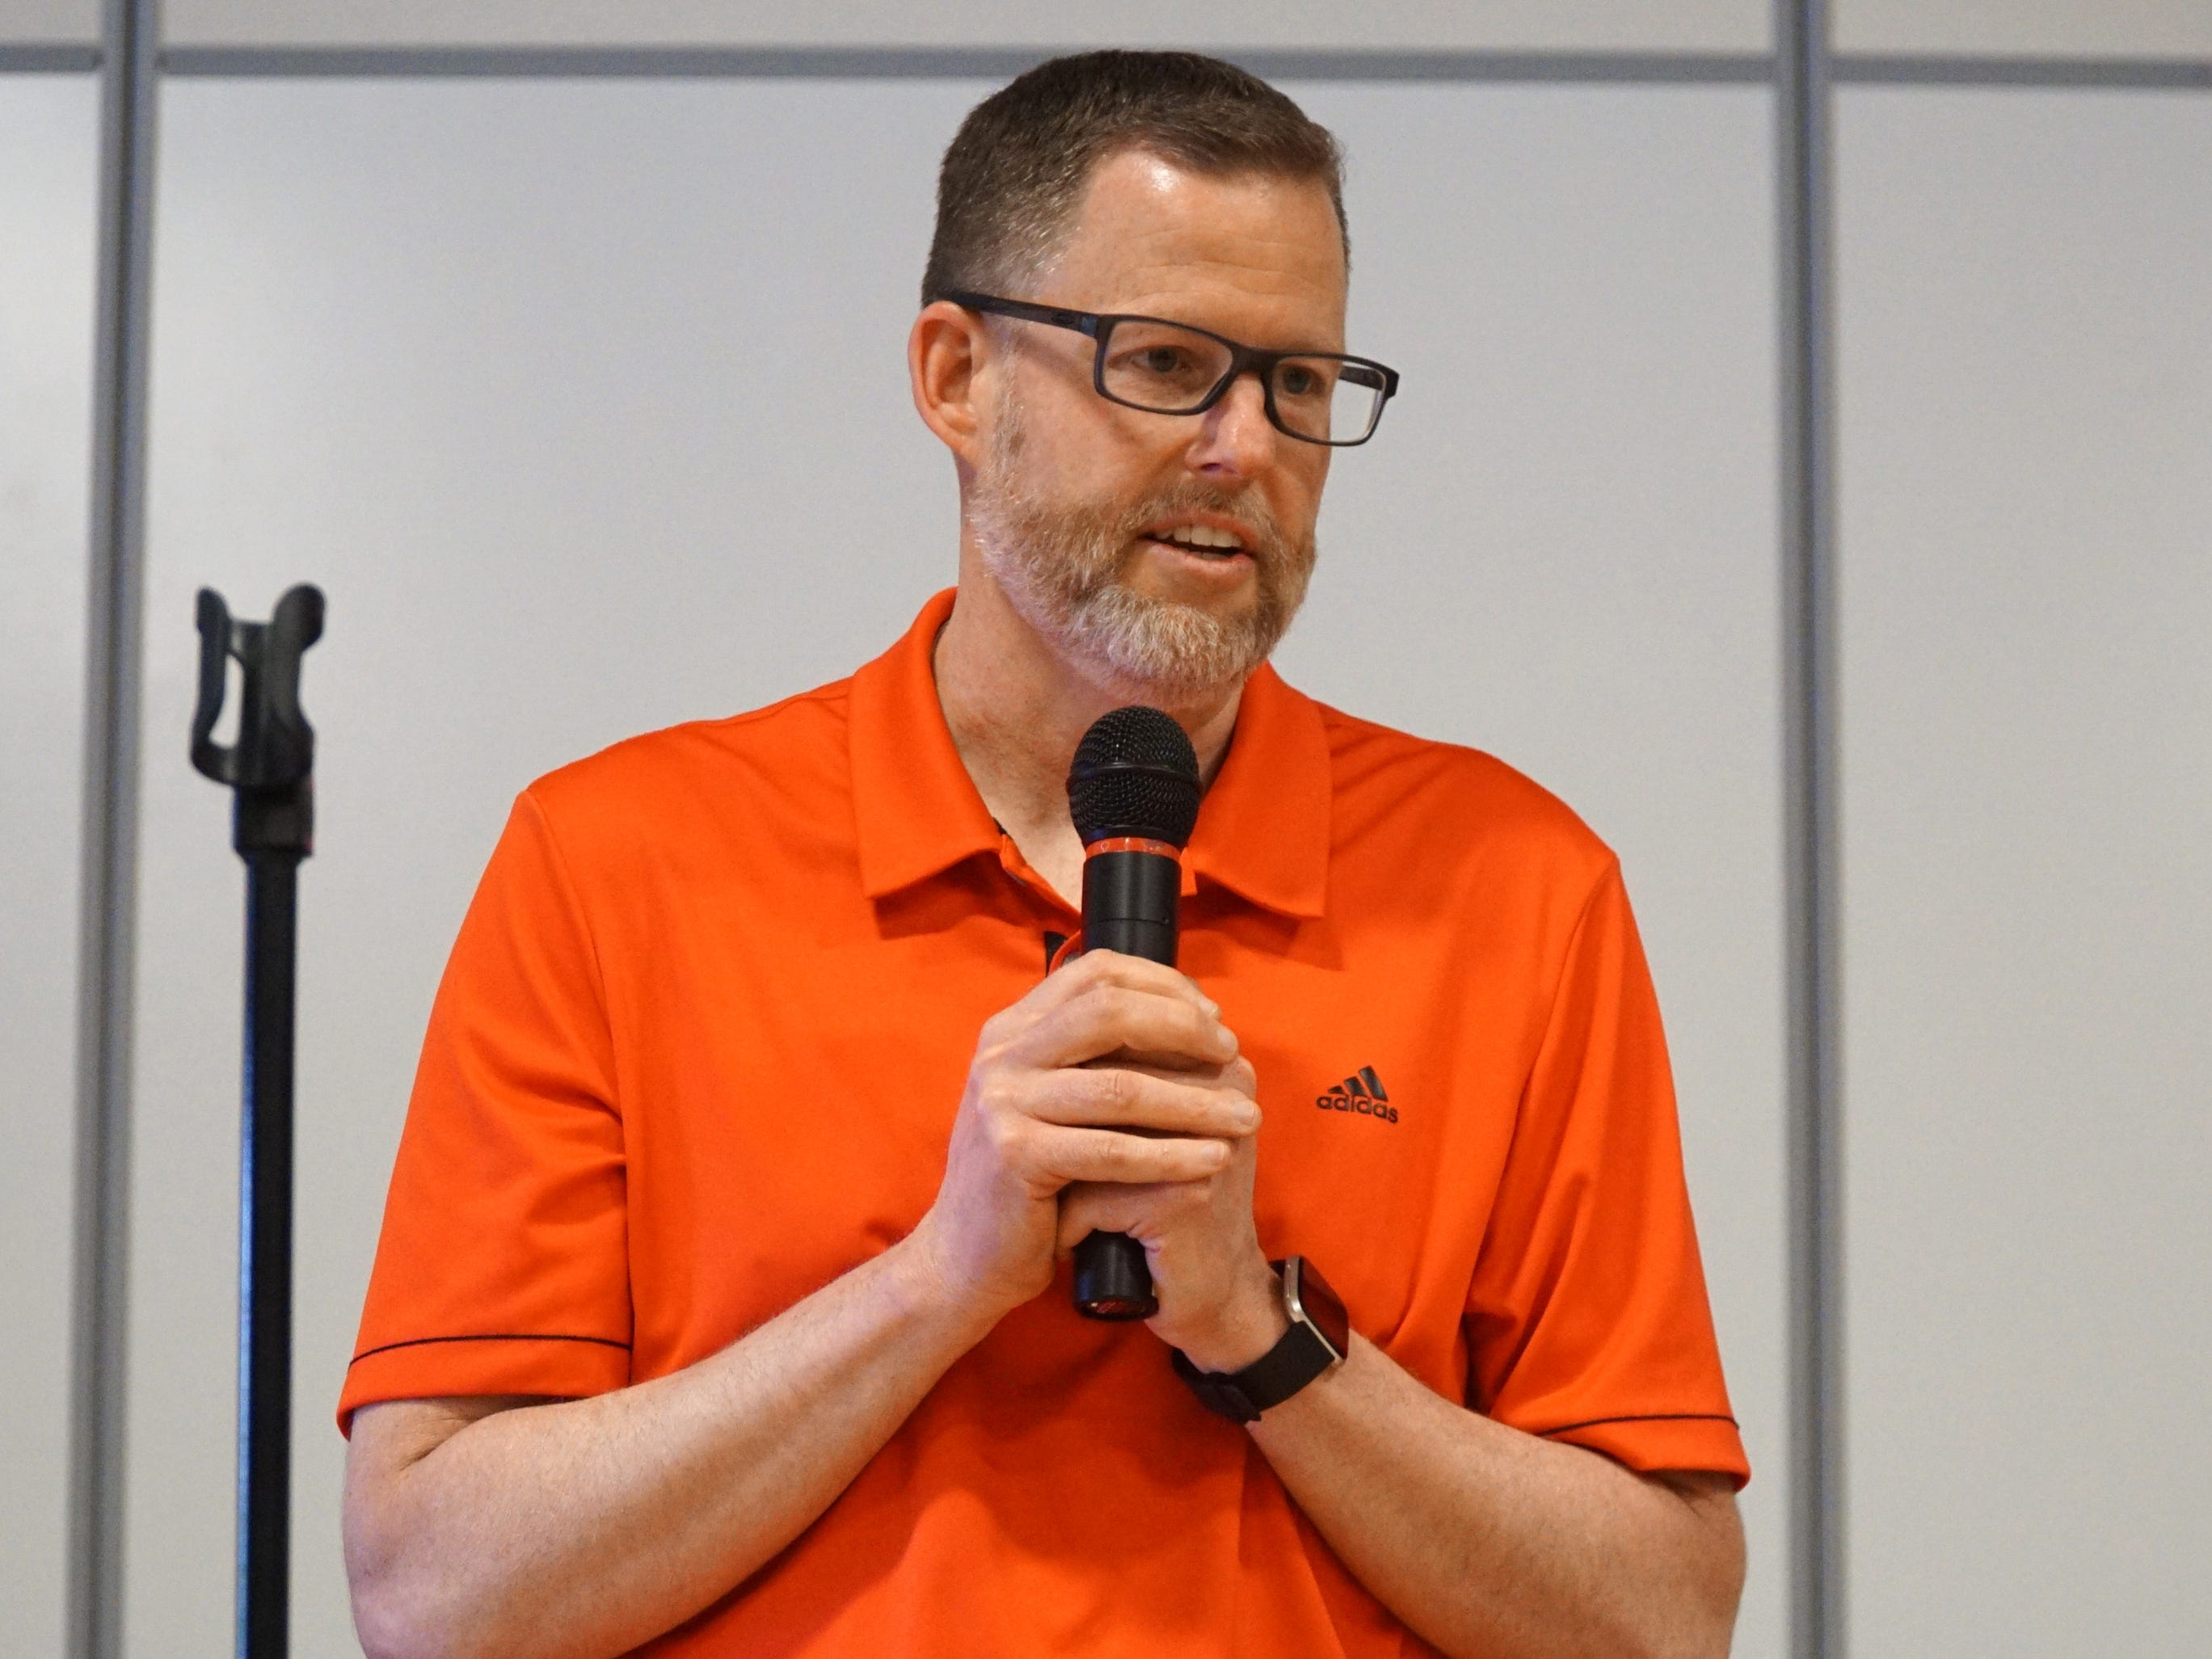 Eriksson Elementary School principal Kevin Learned thanks his students and staff for making it possible for him to throw out the first pitch at the Tigers' June 26th game.